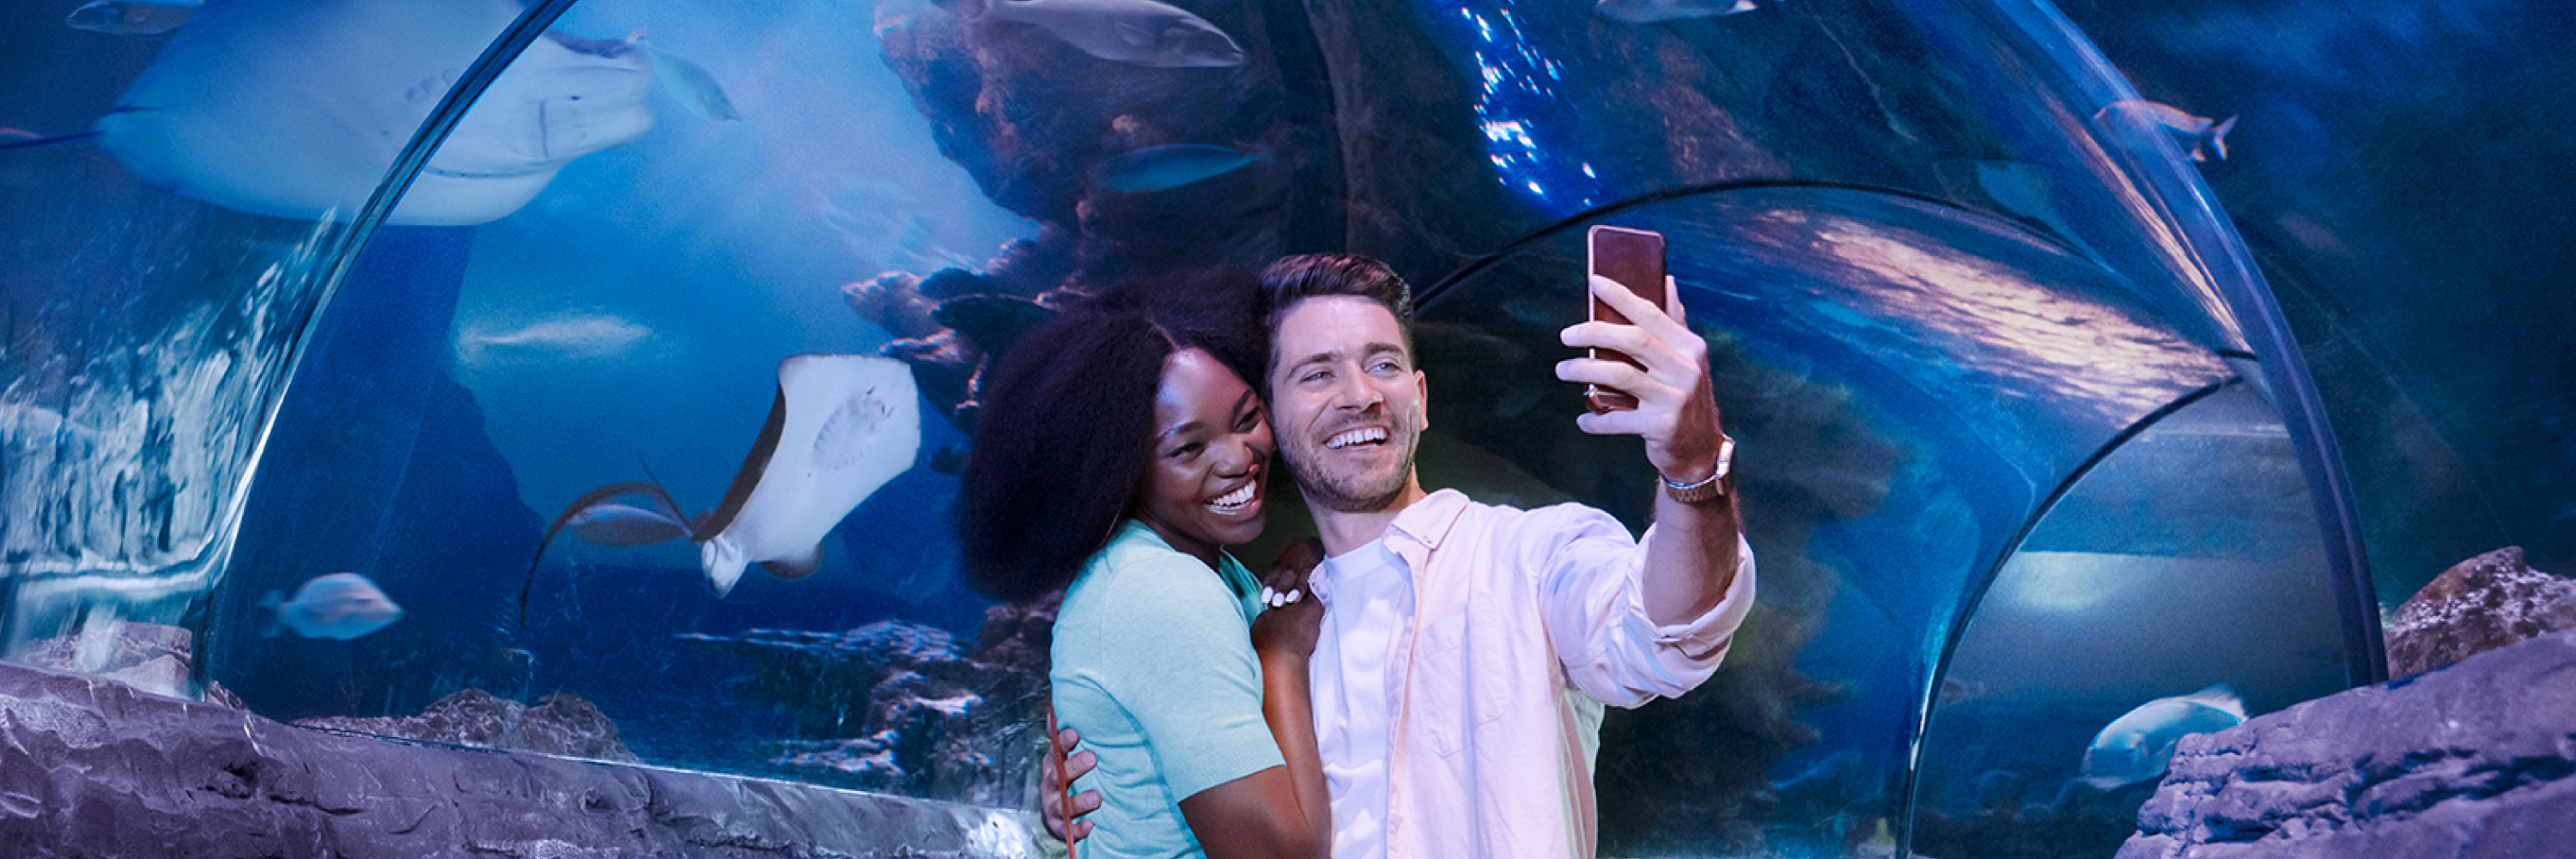 Couple Selfie Tunnel 3000X1000 | SEA LIFE Michigan Aquarium